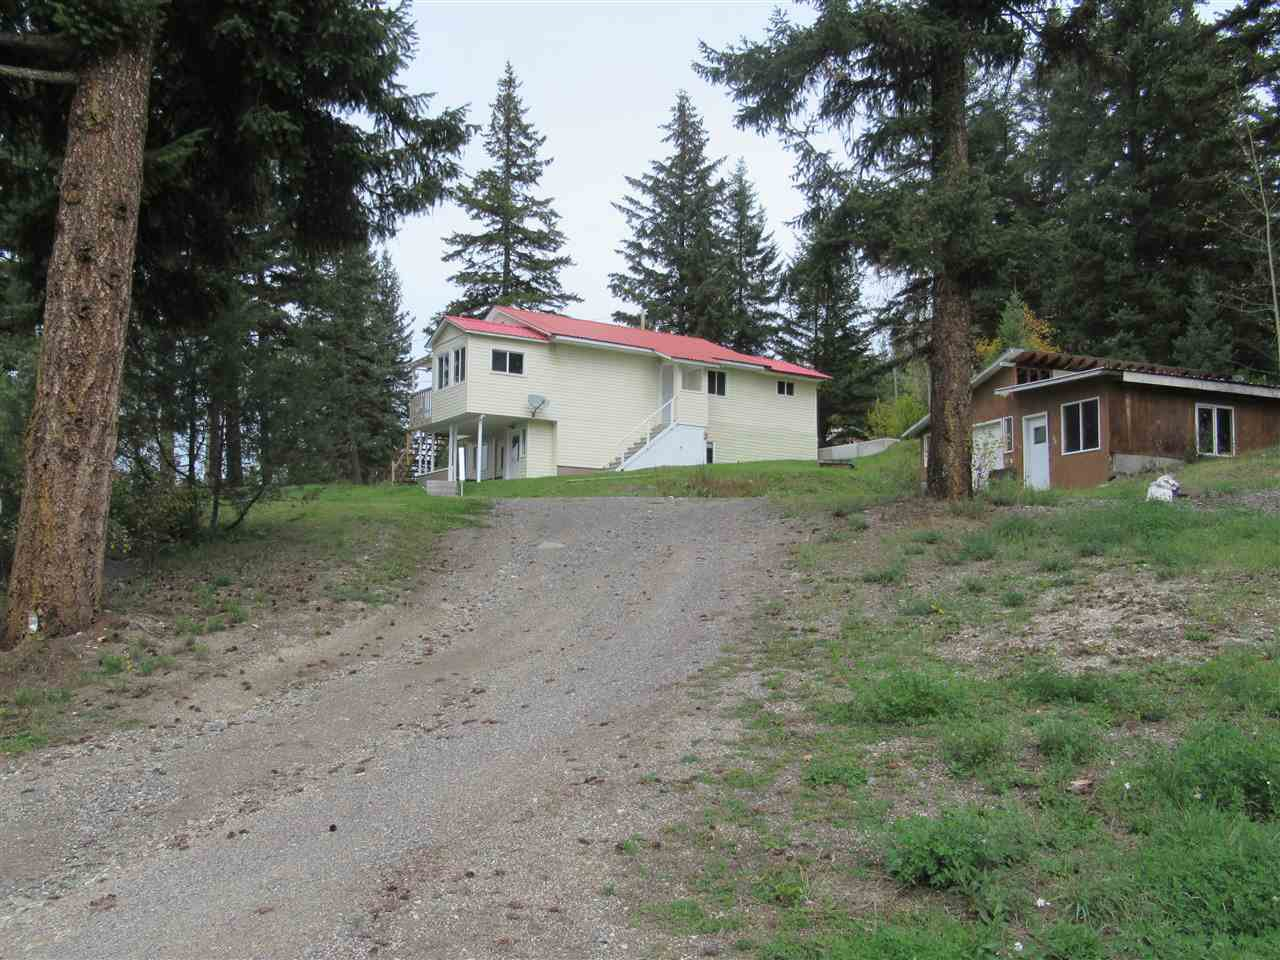 Photo 17: Photos: 3974 SCHARF Road in Williams Lake: Williams Lake - Rural North House for sale (Williams Lake (Zone 27))  : MLS®# R2409567